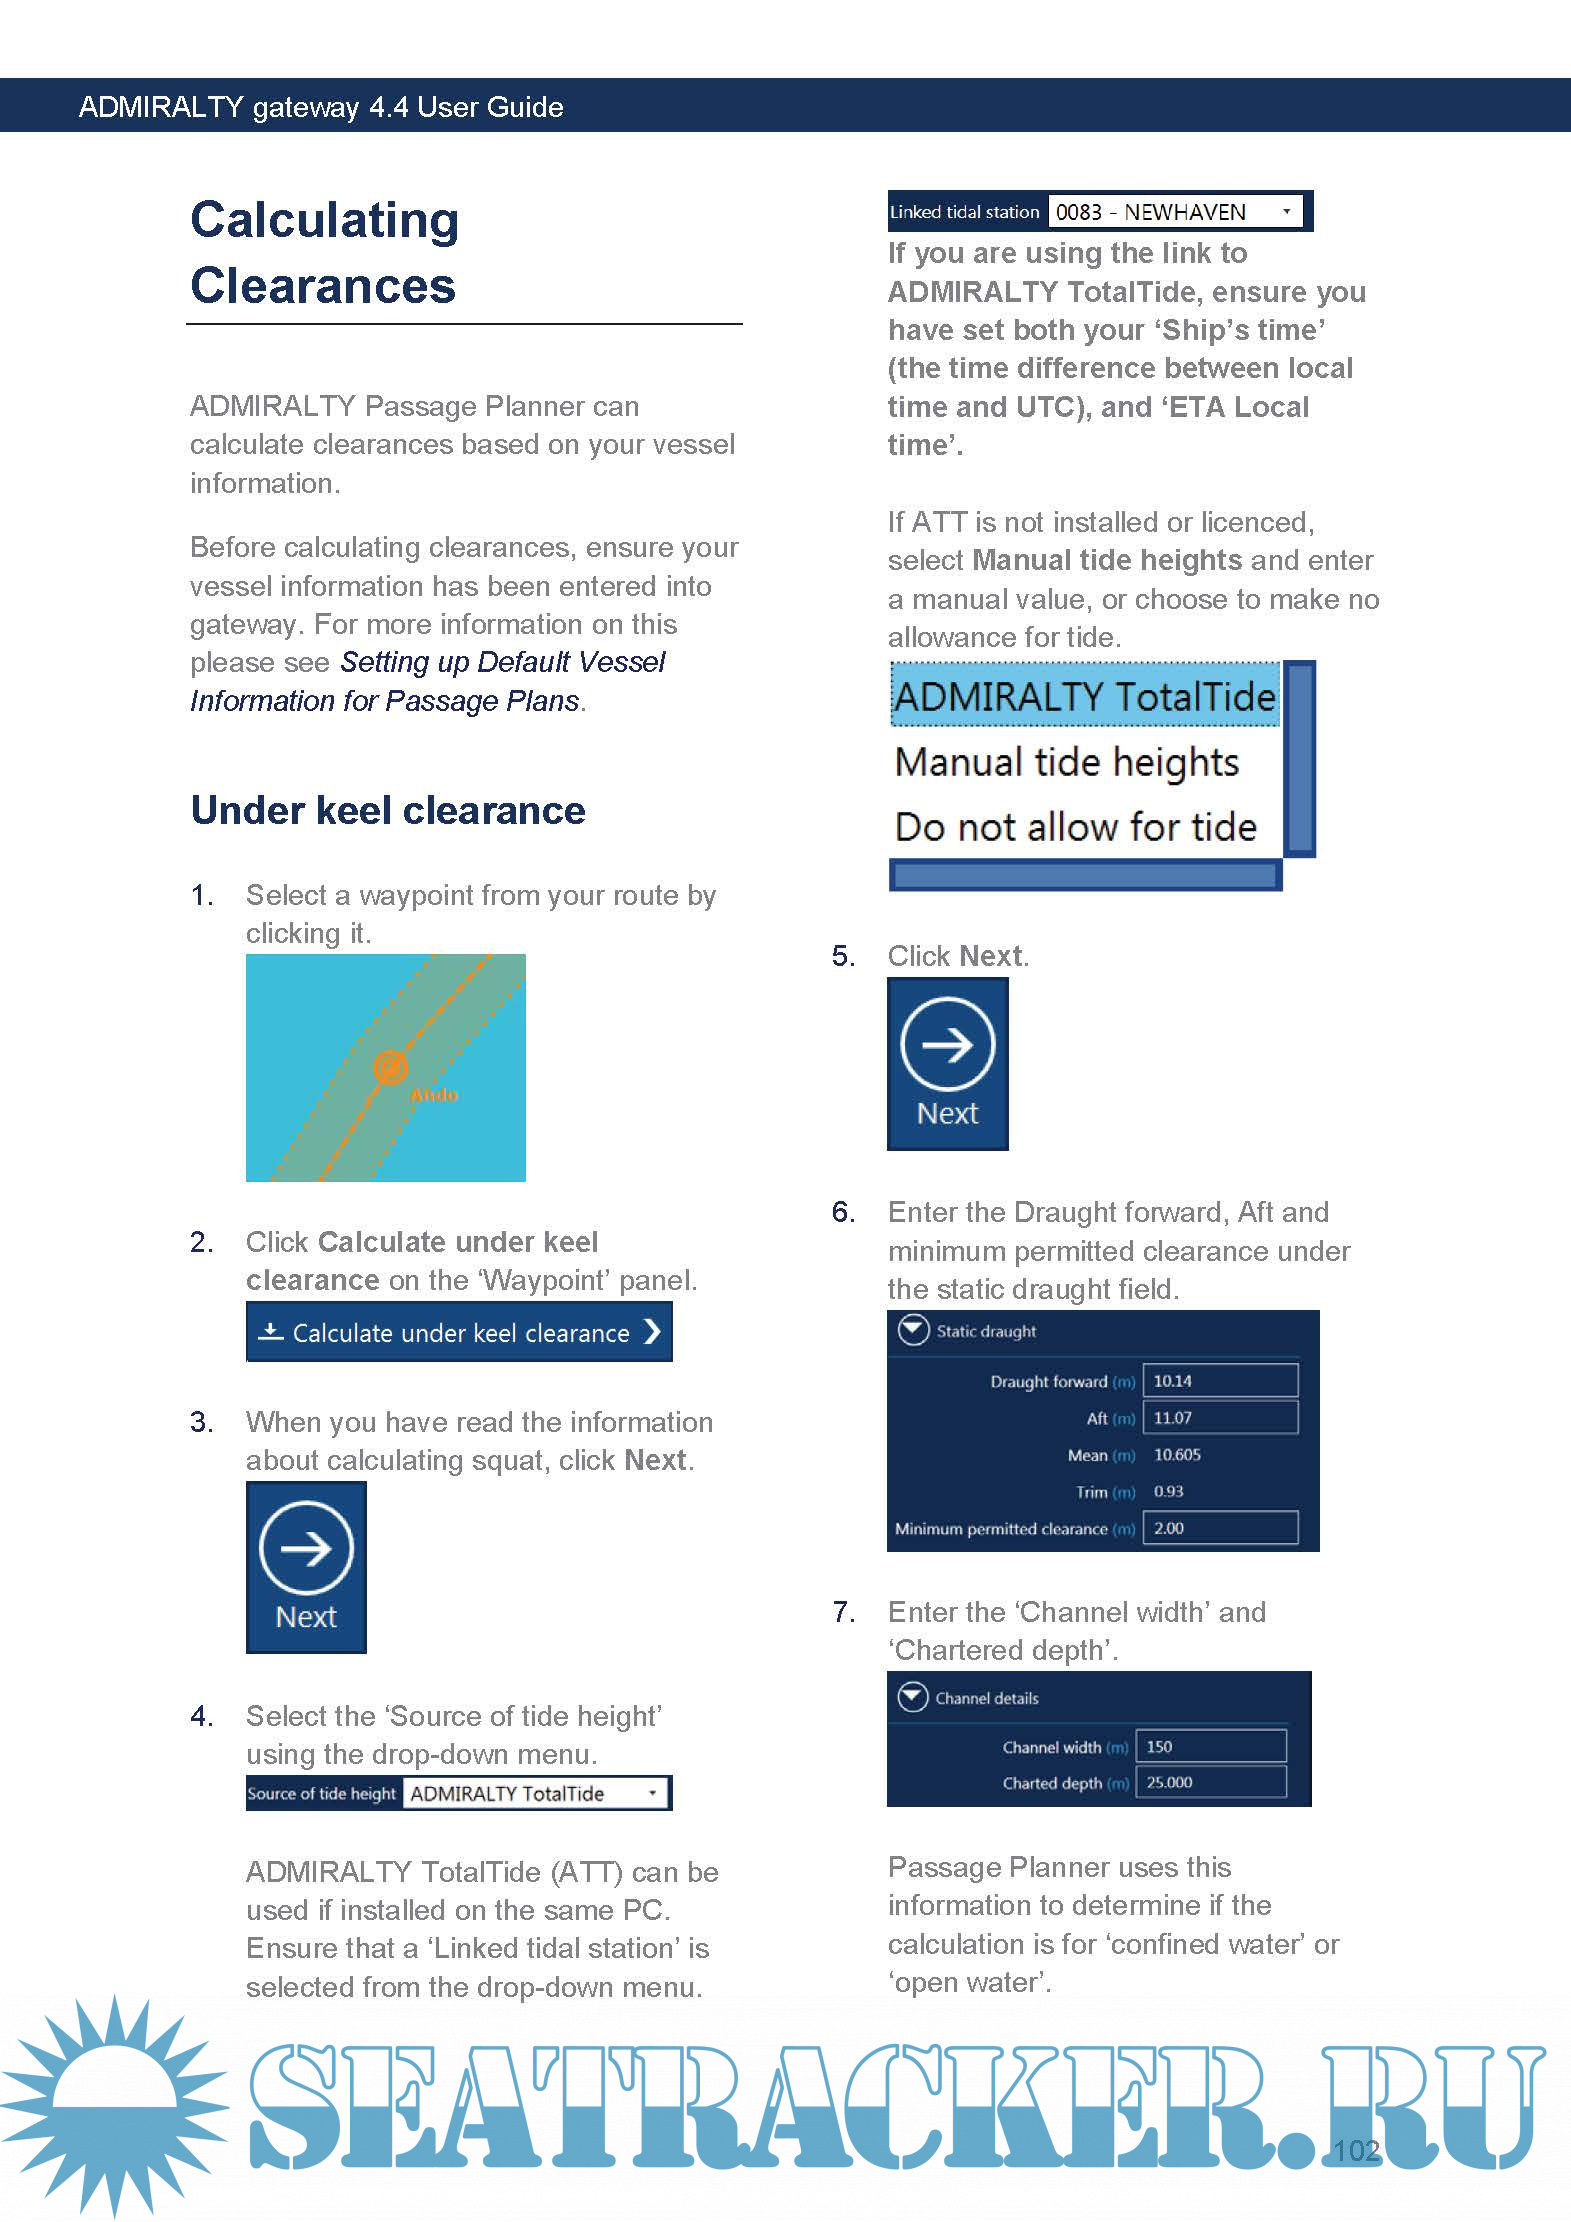 ADMIRALTY gateway 4 4 User Guide - UKHO [2017, PDF